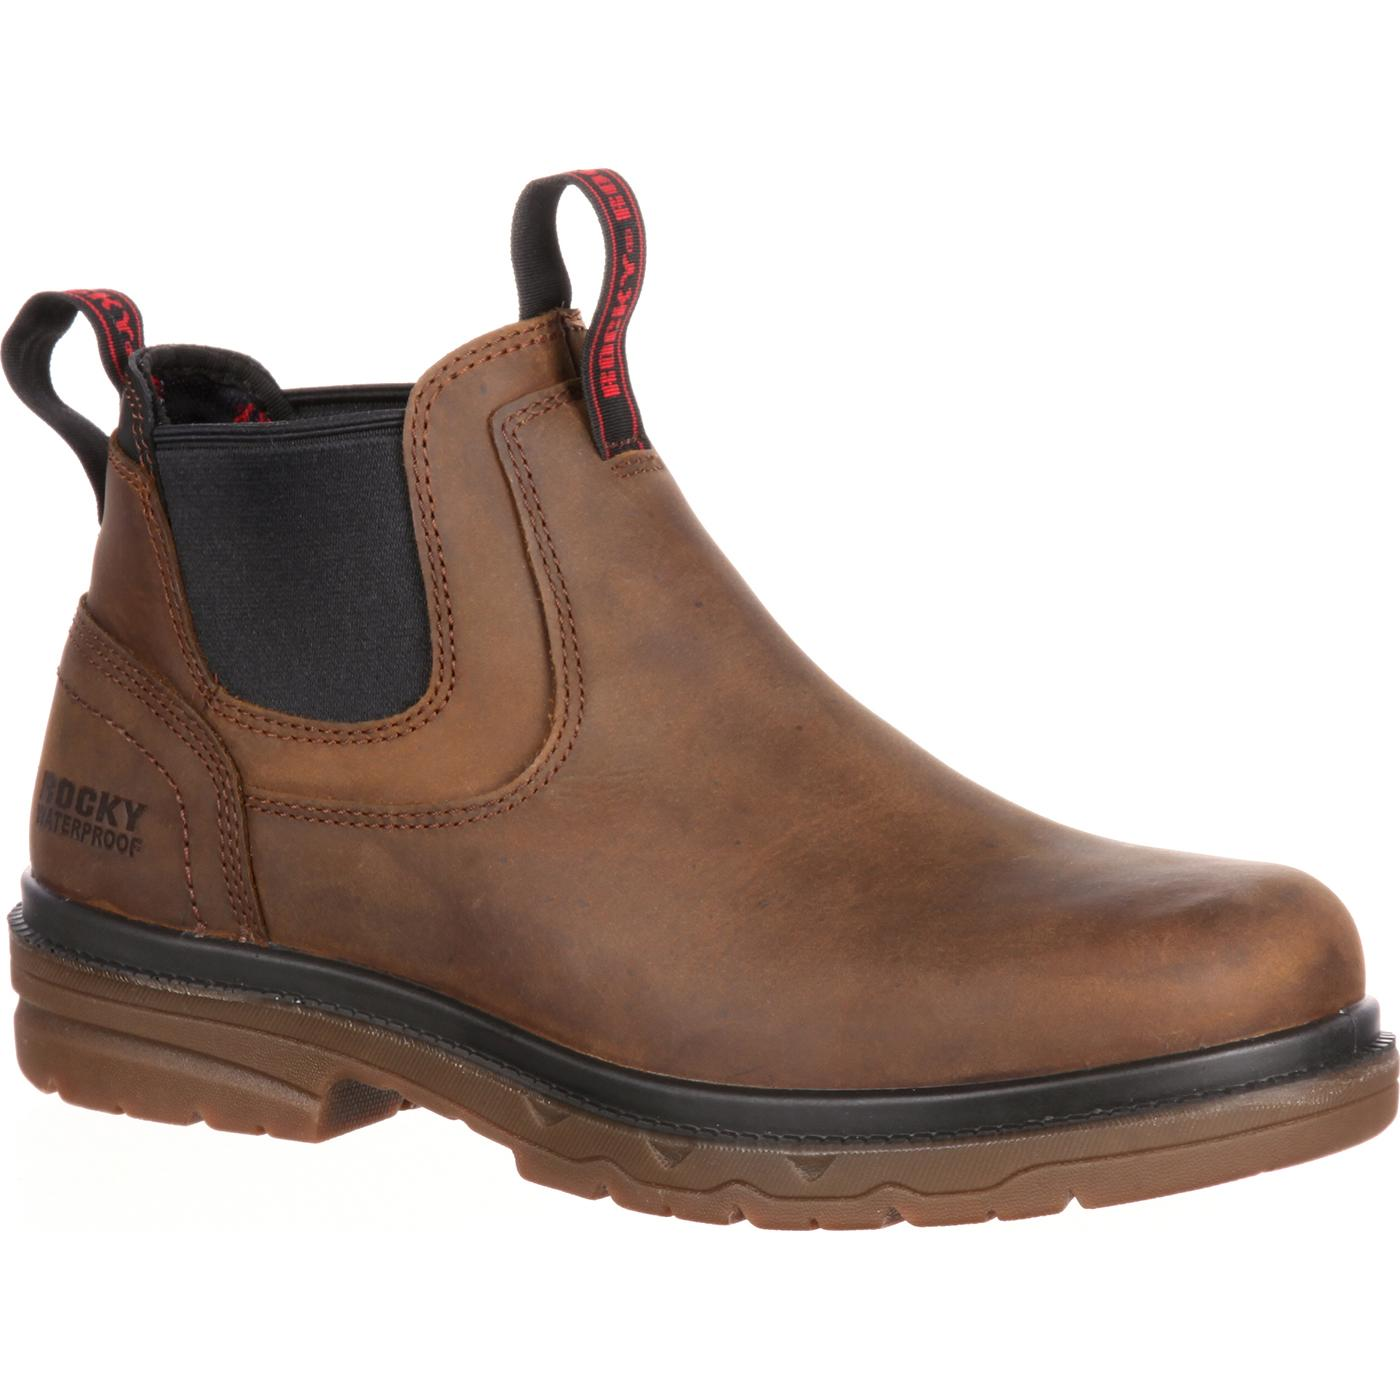 Rocky Elements Shale Steel Toe Waterproof Romeo Work Boot